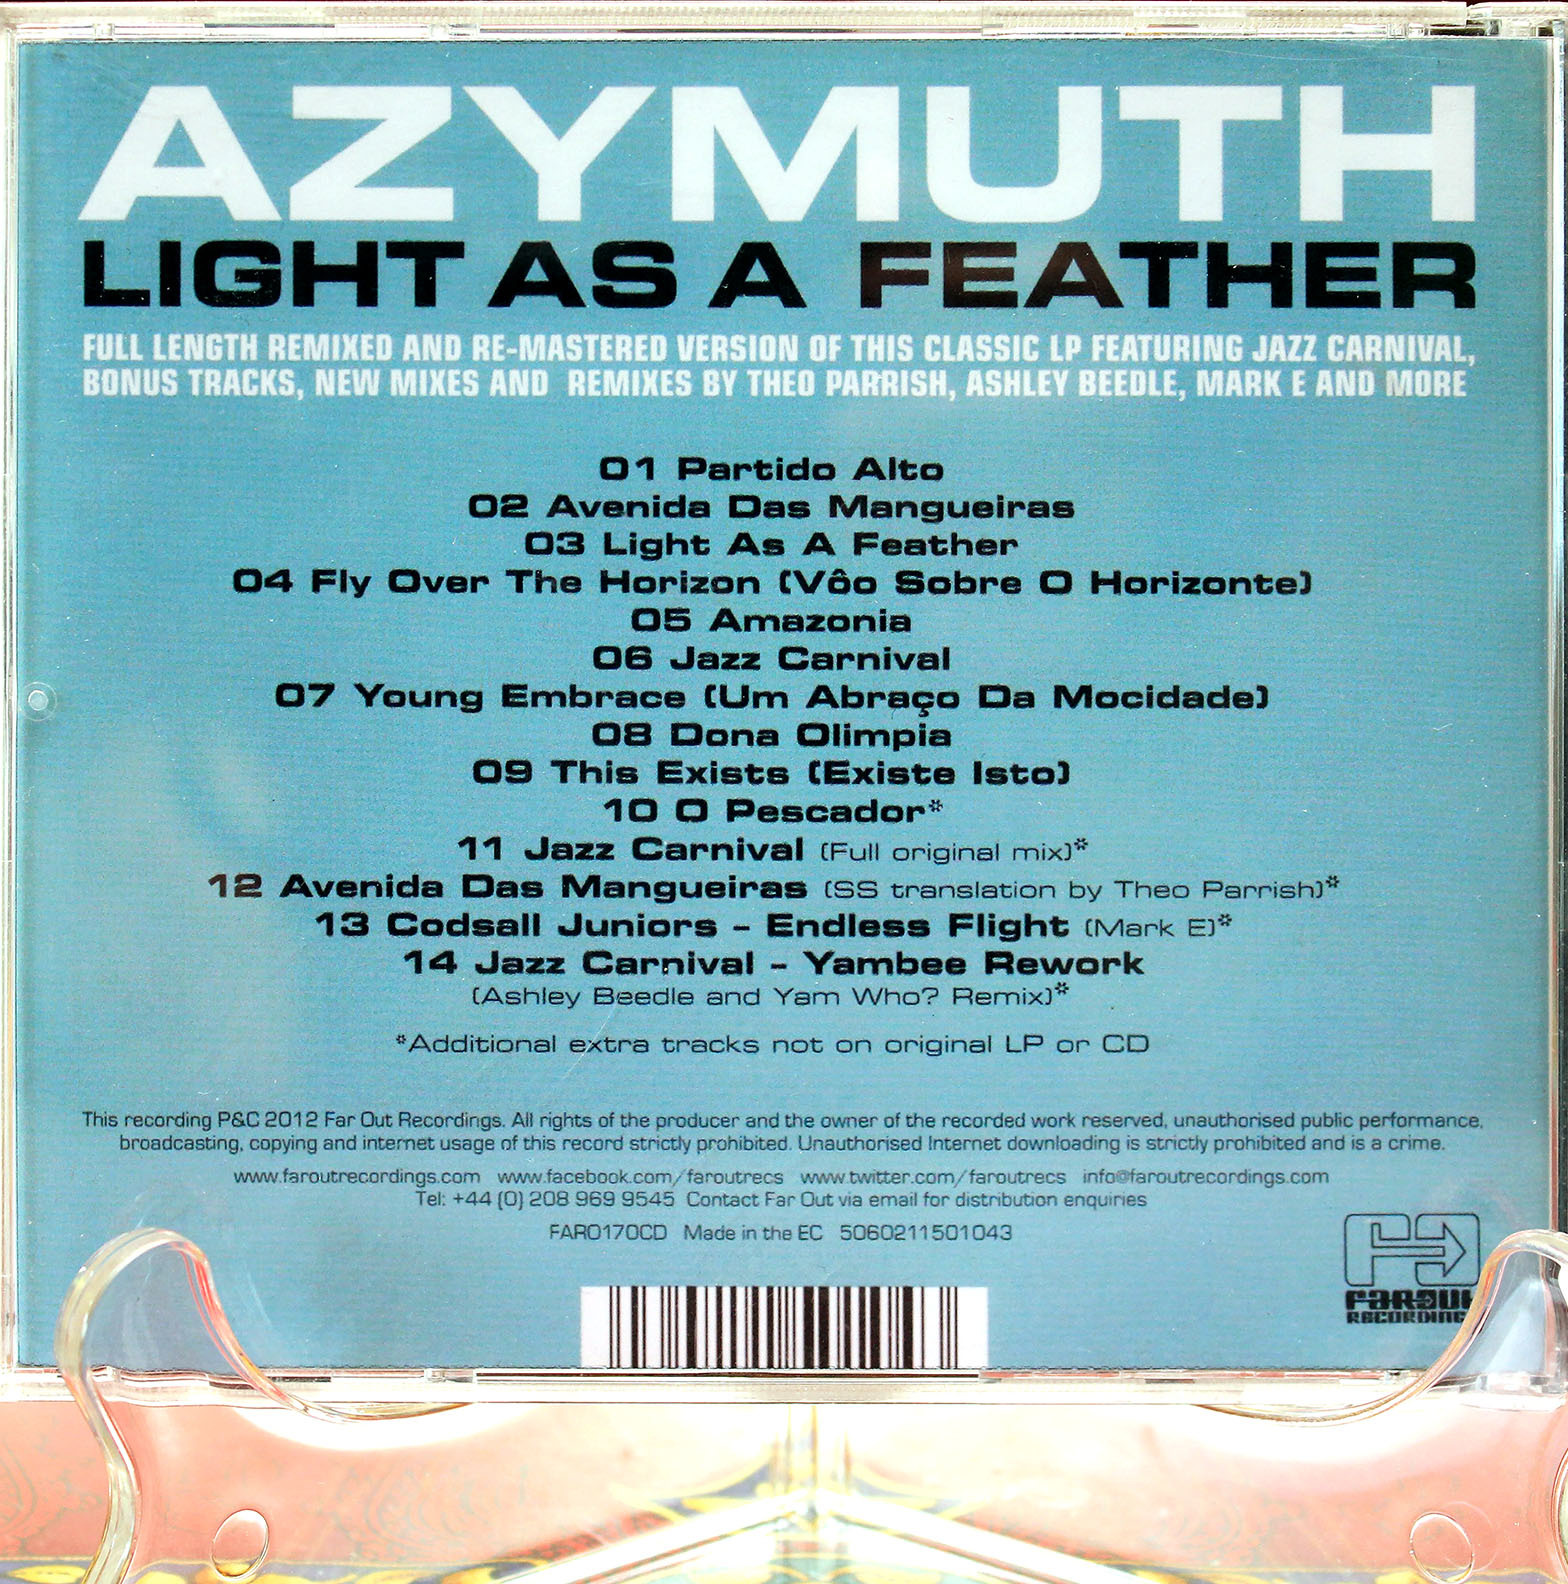 Azymuth Lights As Feather 02